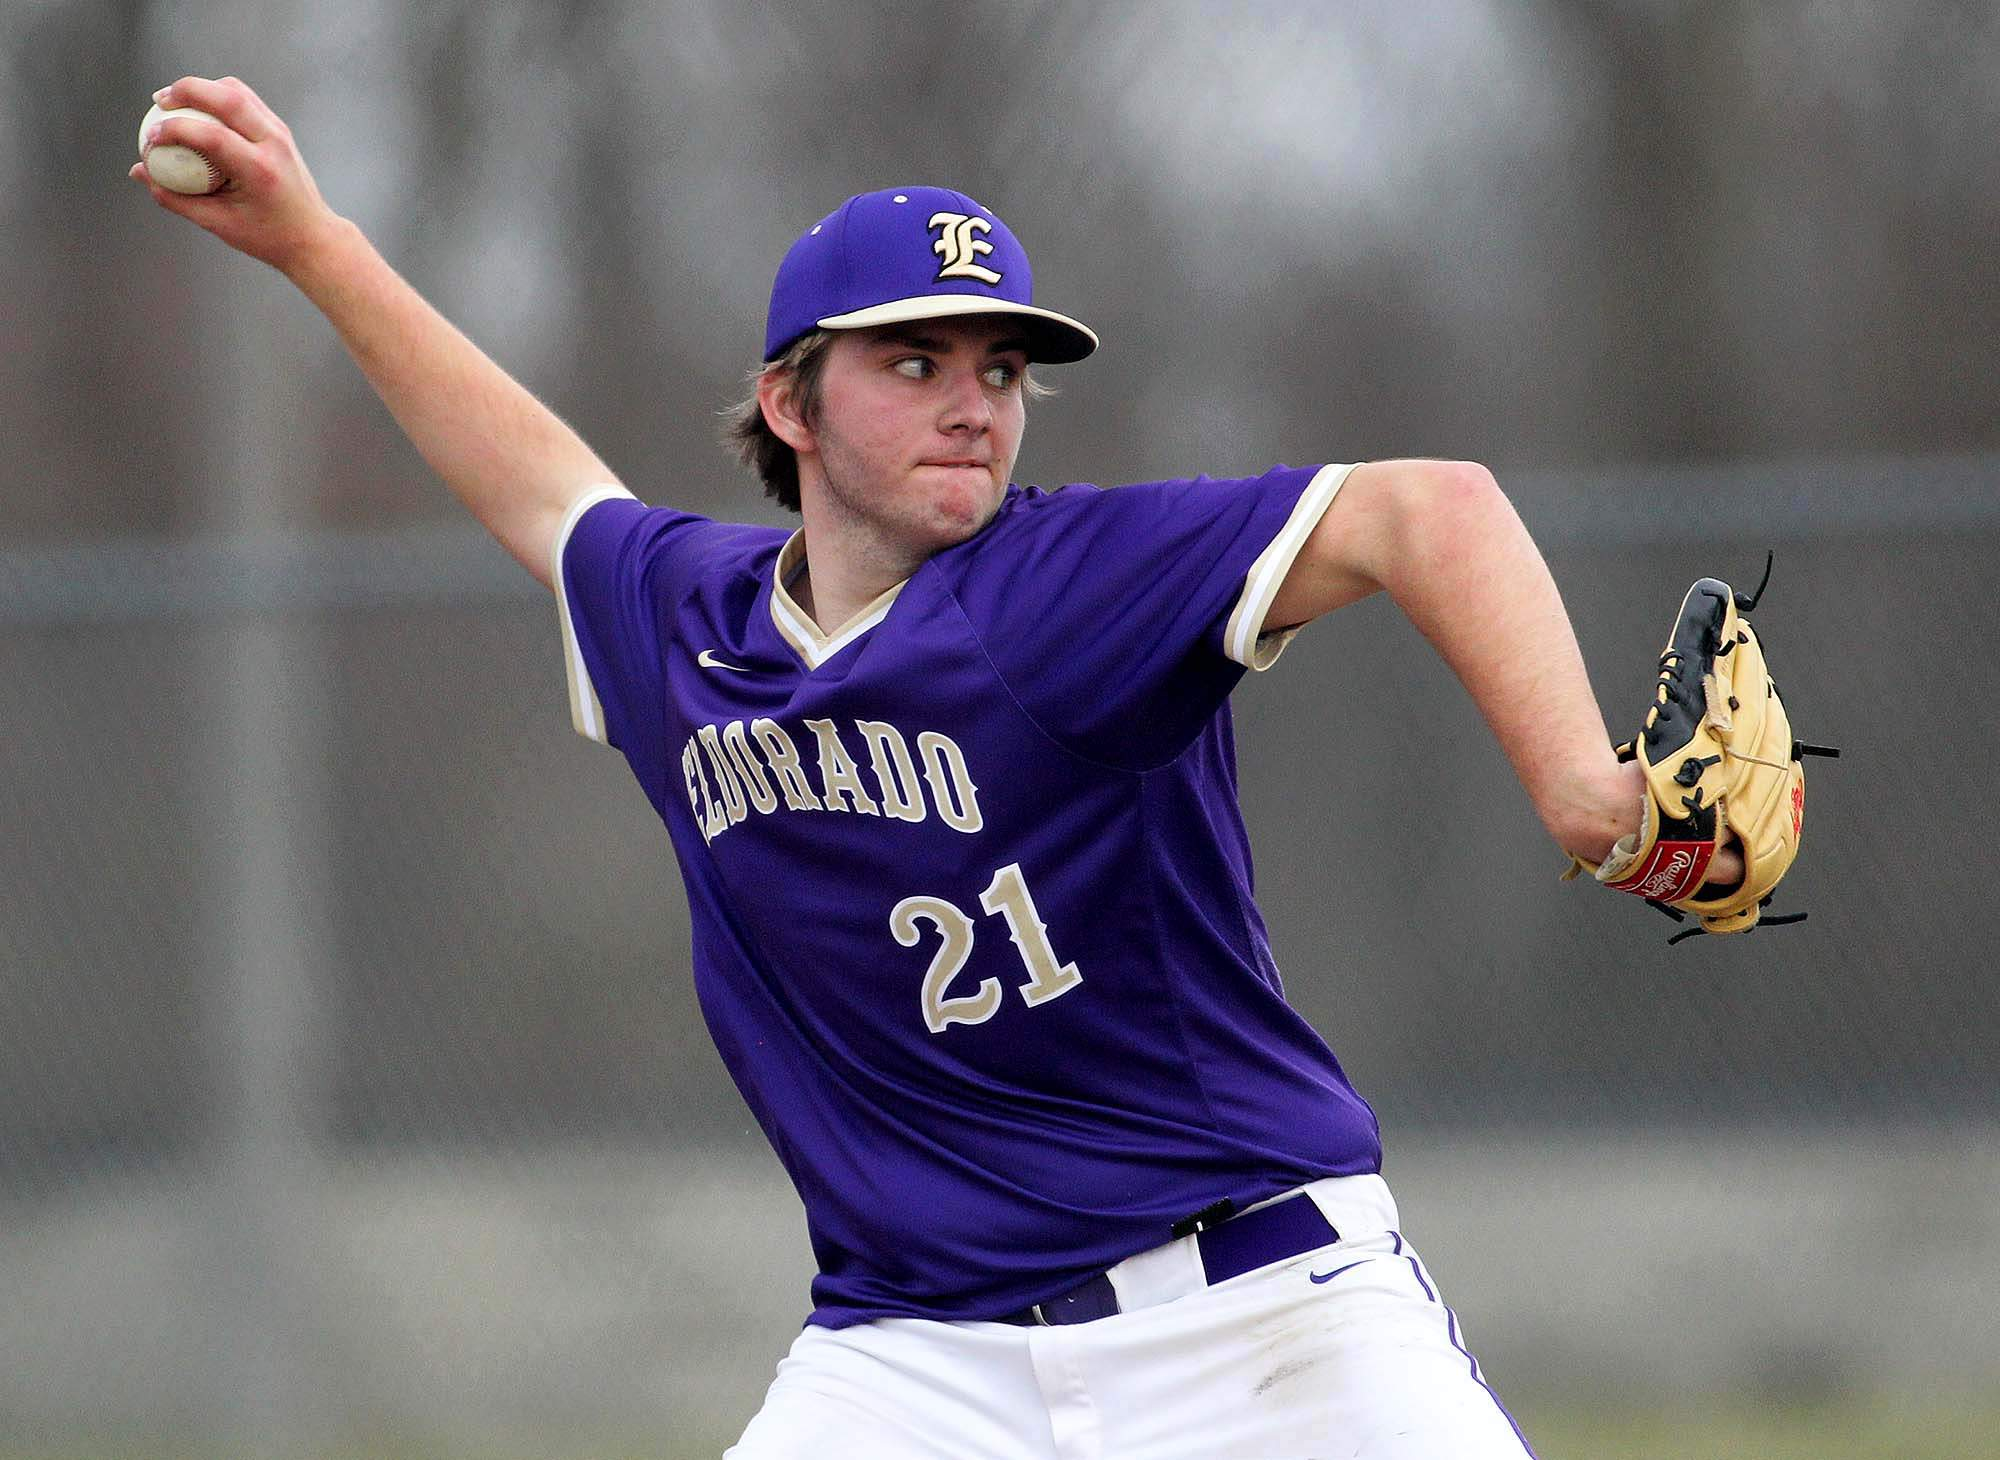 Braden Unthank took the loss for Eldorado in its season opener Wednesday at Carterville. Unthank allowed eight hits over 3.2 innings, striking out two and walking three.